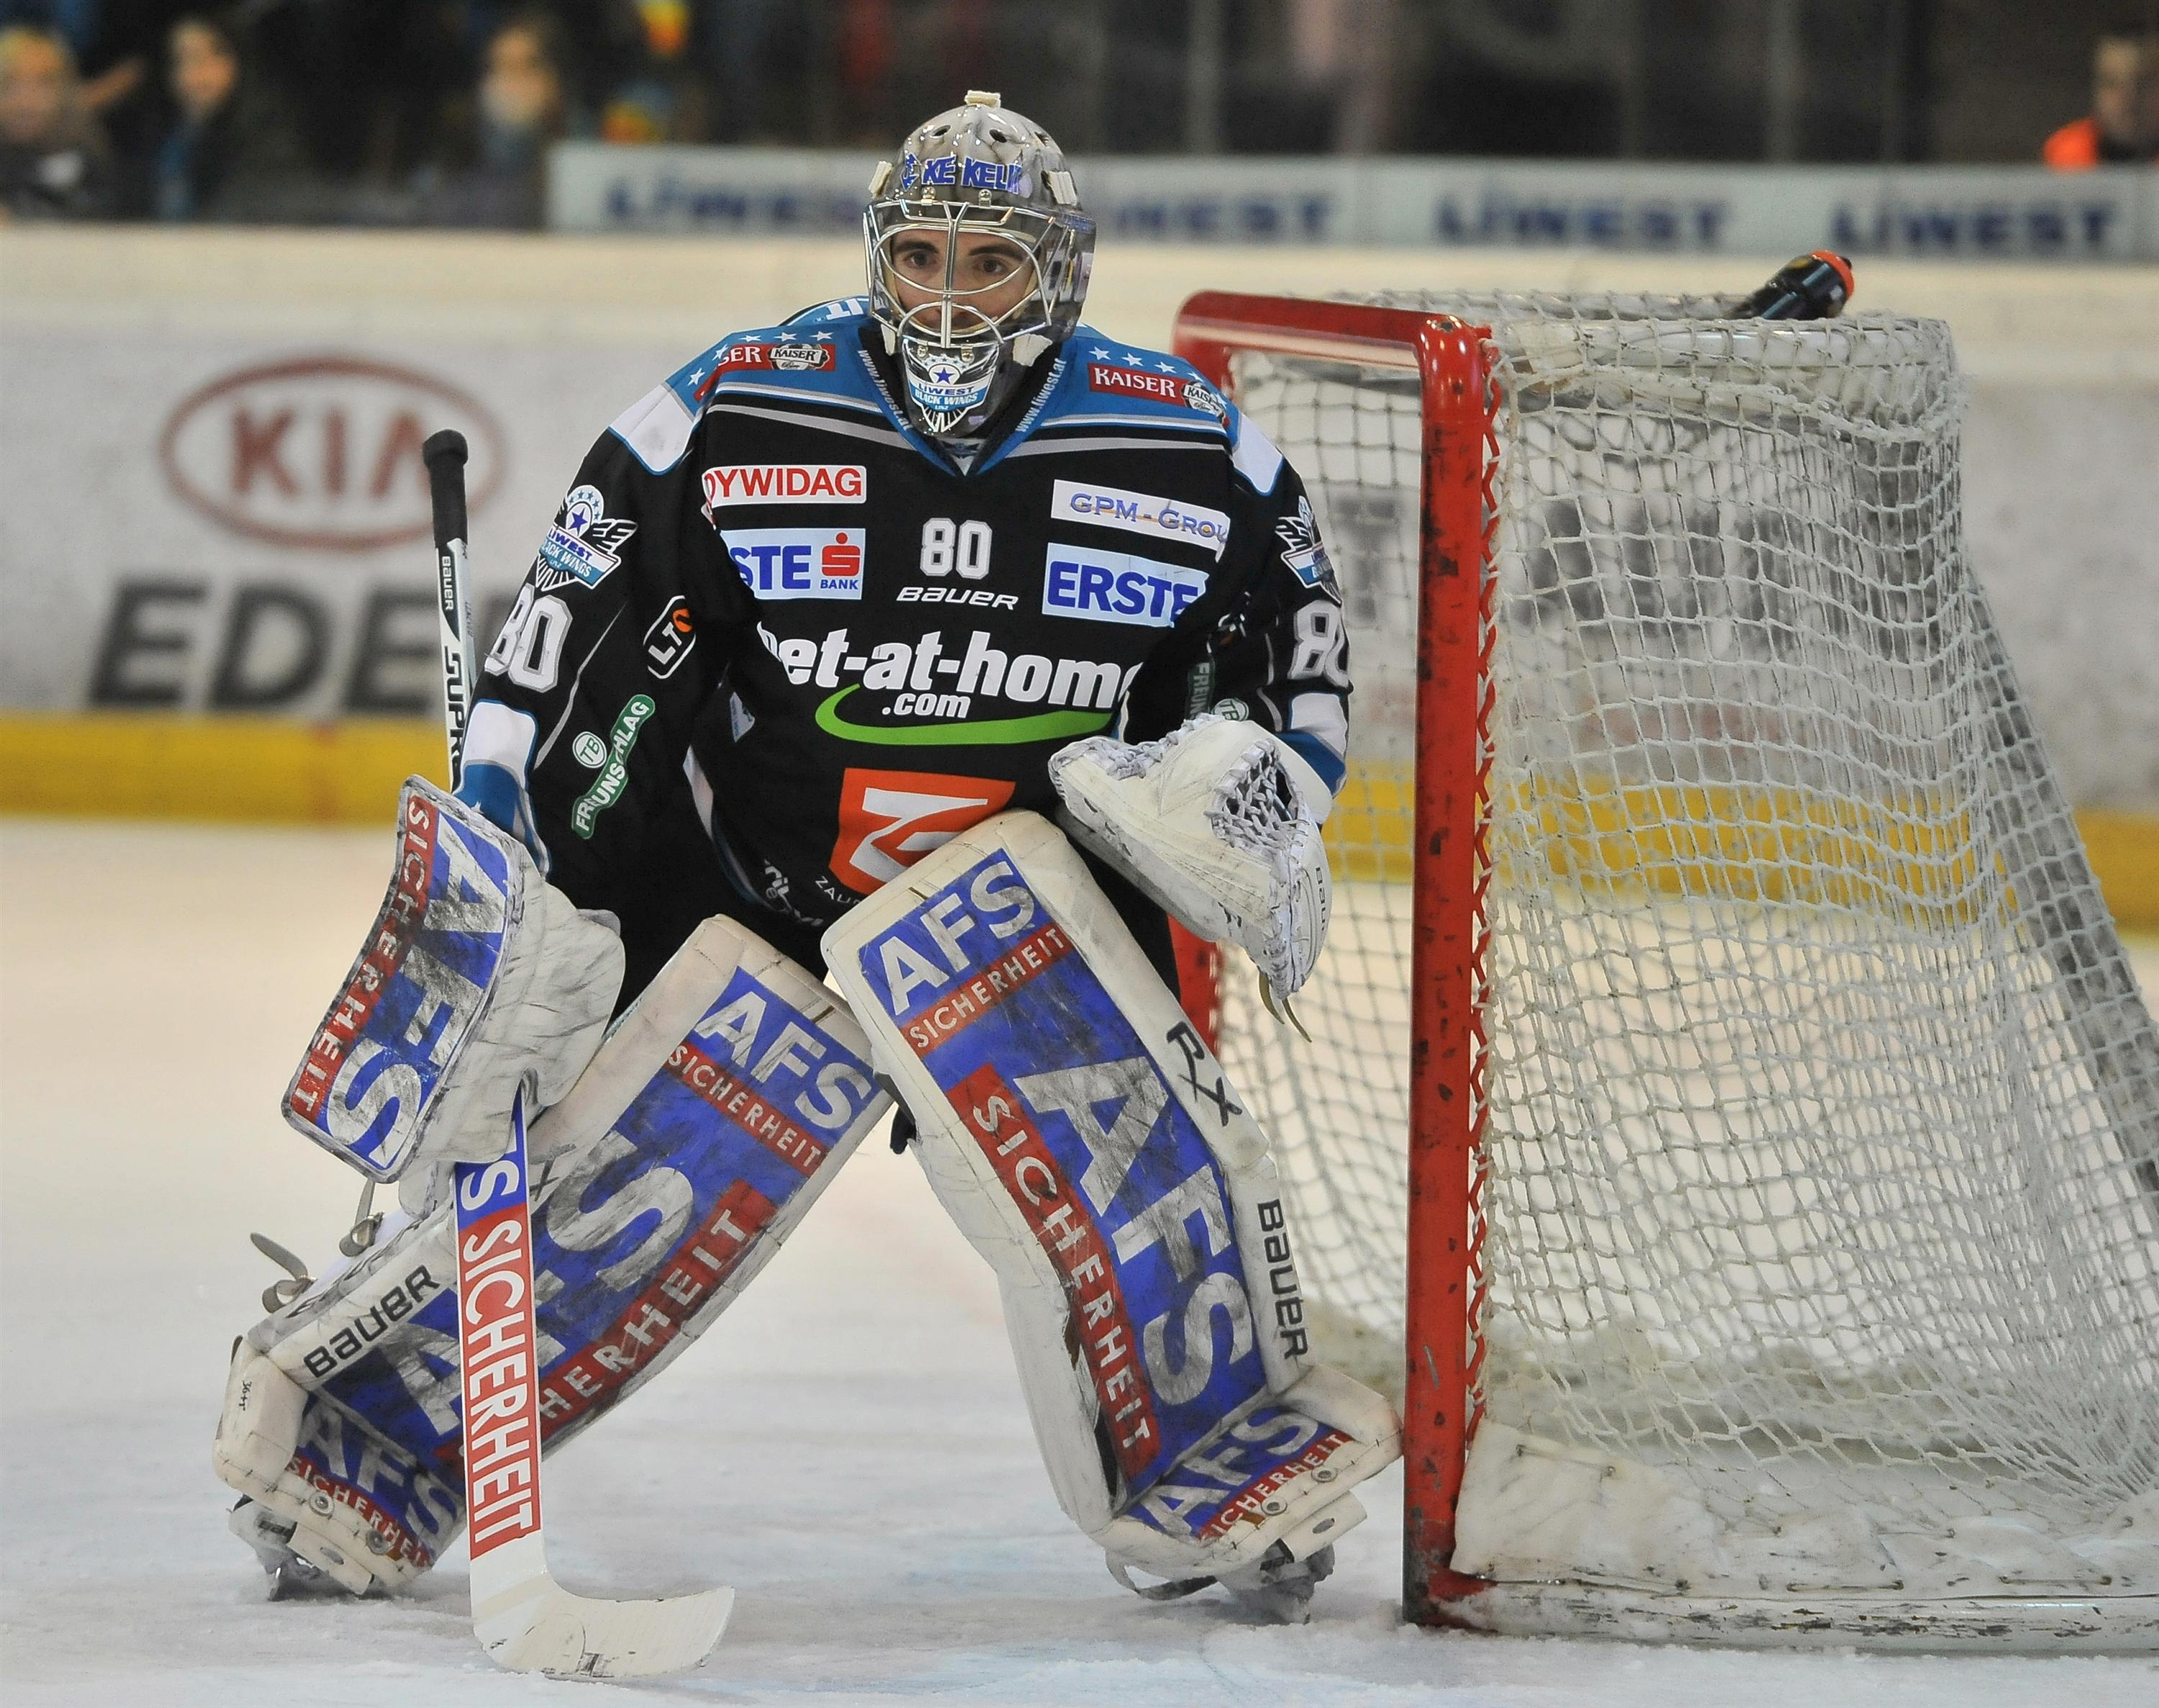 Eishockey Black Wings Linz vs VSV 25.01.2013 – David Leneveu 1